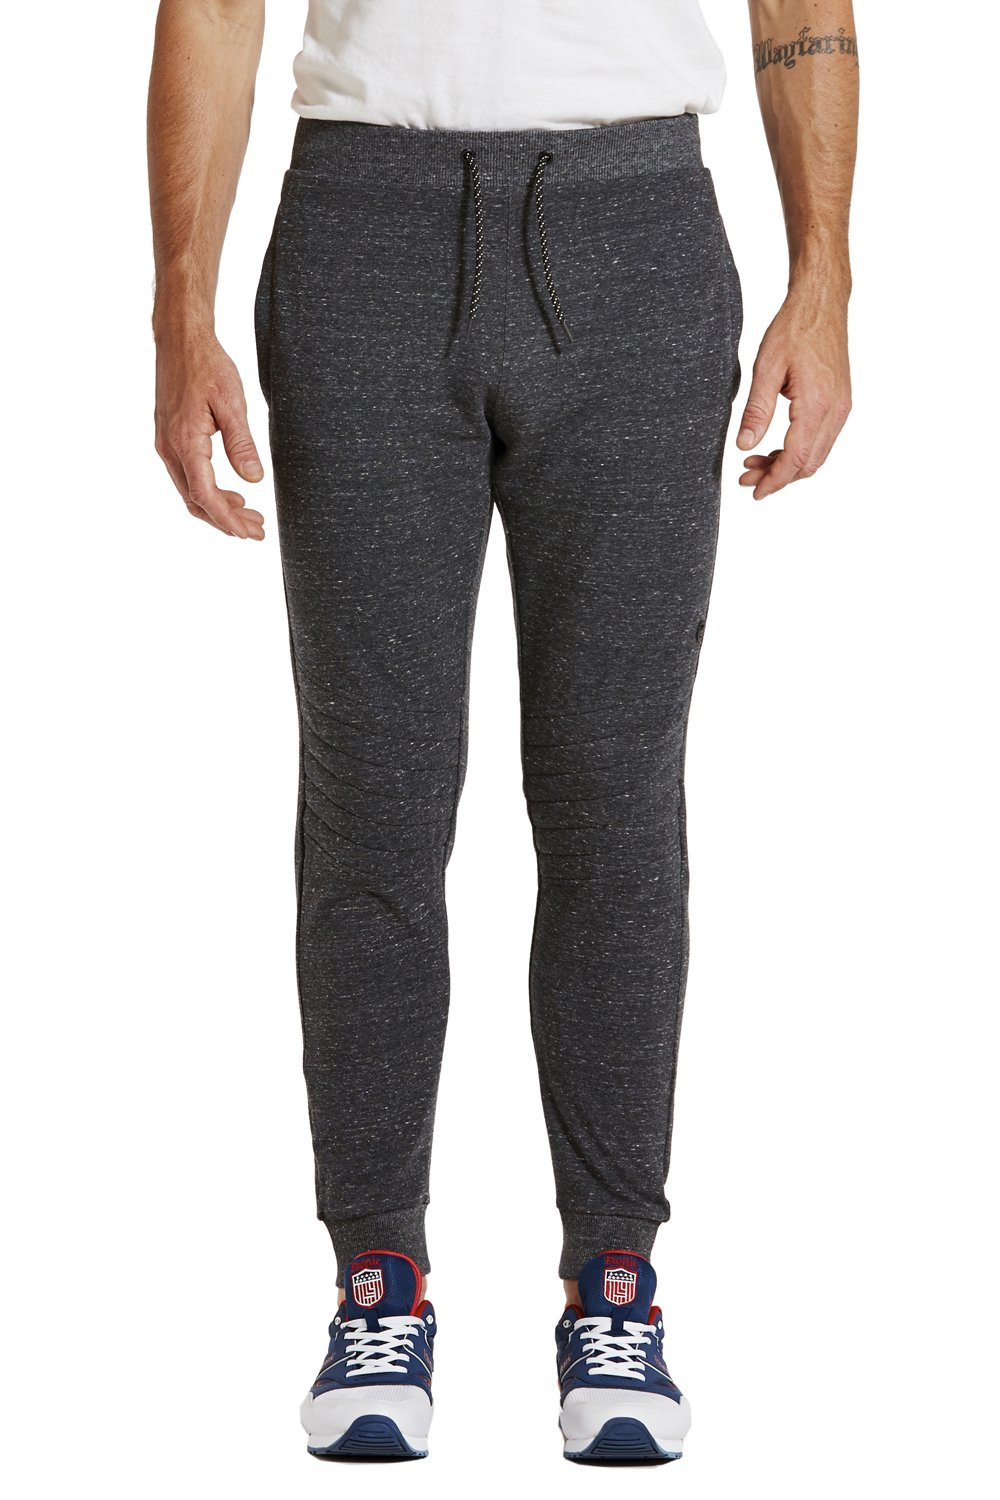 etonic Men's FLX Quilted Knee Zipper Pocket Jogger Sweatpant, Charcoal Heather, Large